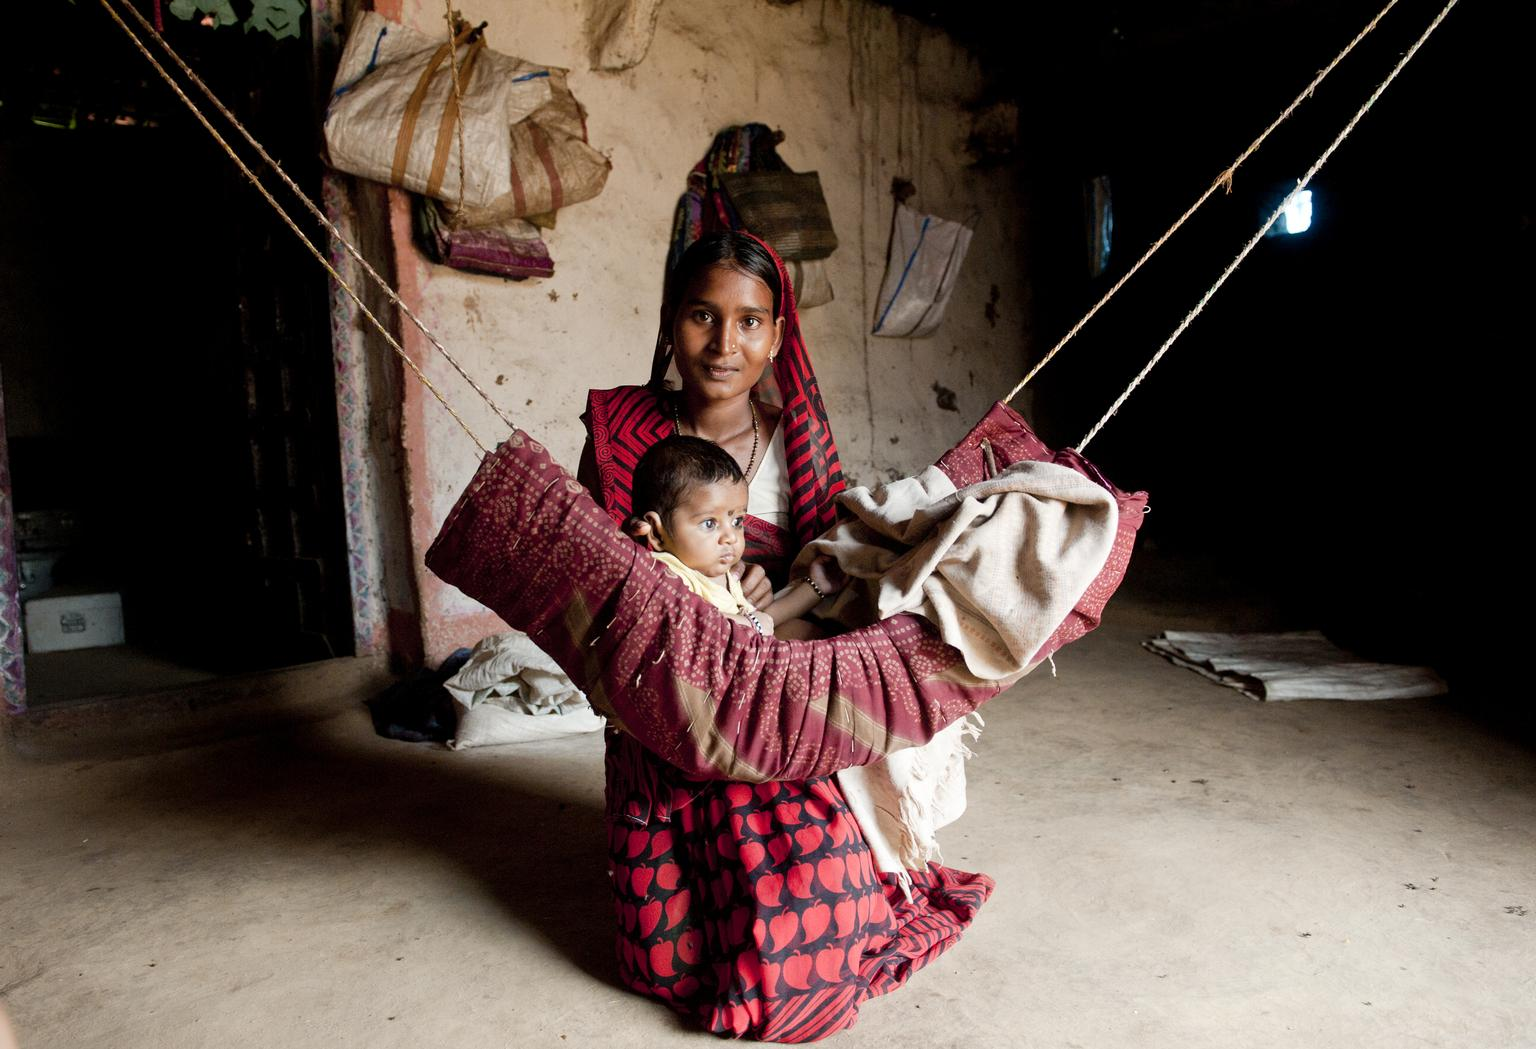 A mother and child from Madhya Pradesh, India. Despite being rich in natural resources Madhya Pradesh is more infamous for its poverty.